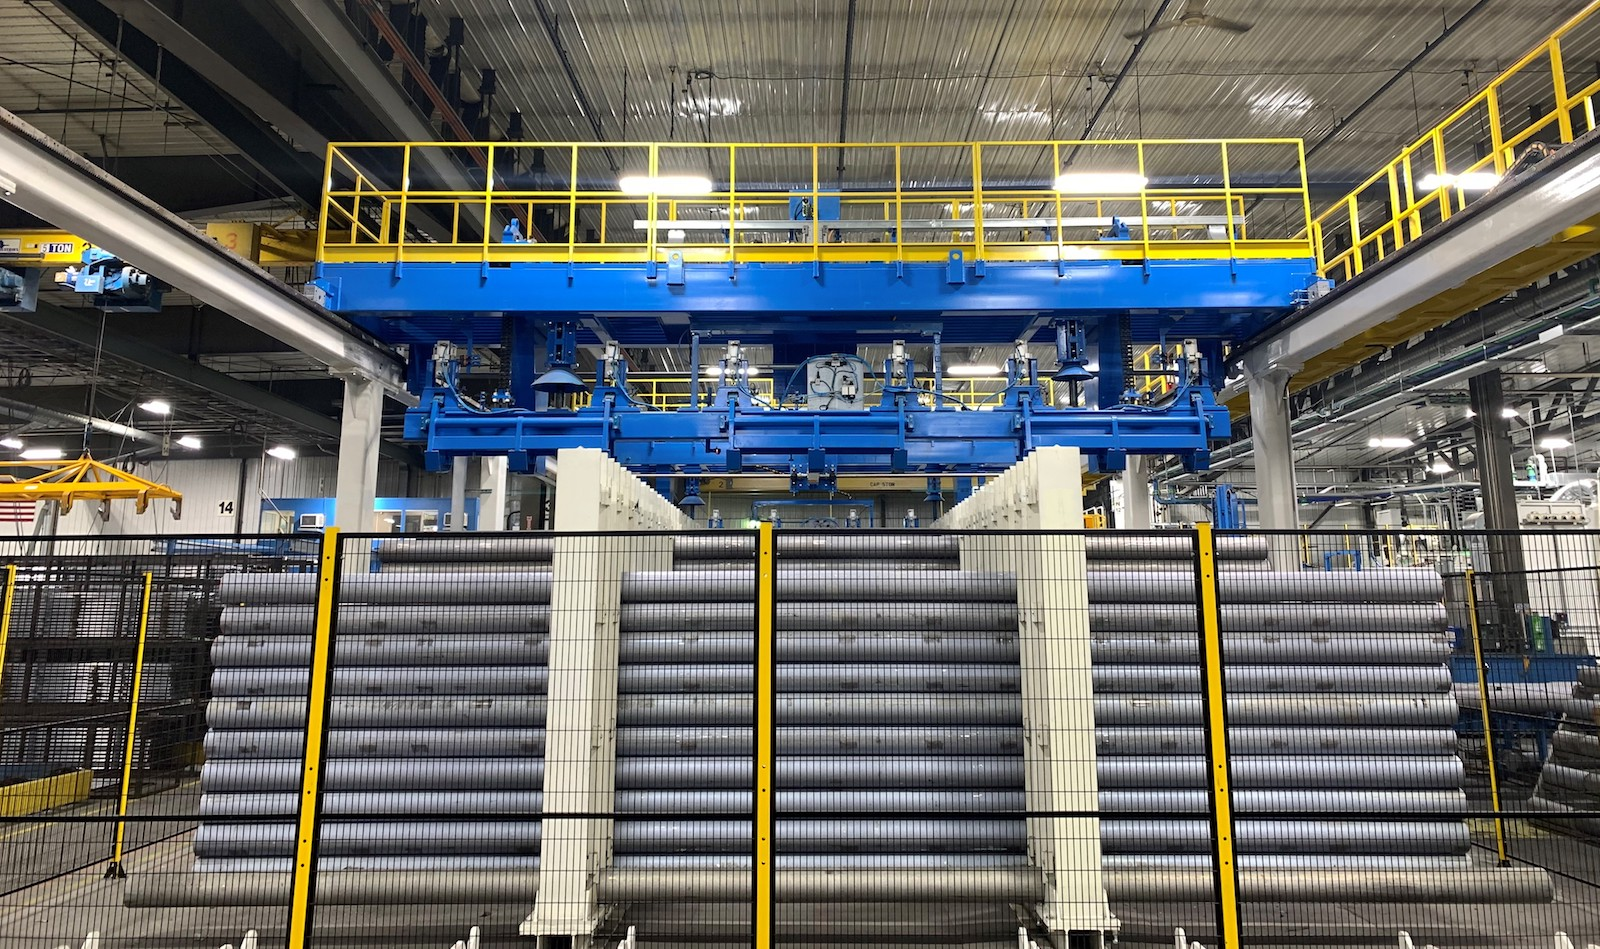 Figure 2. The automated log storage system is capable of storing more than 500 logs.